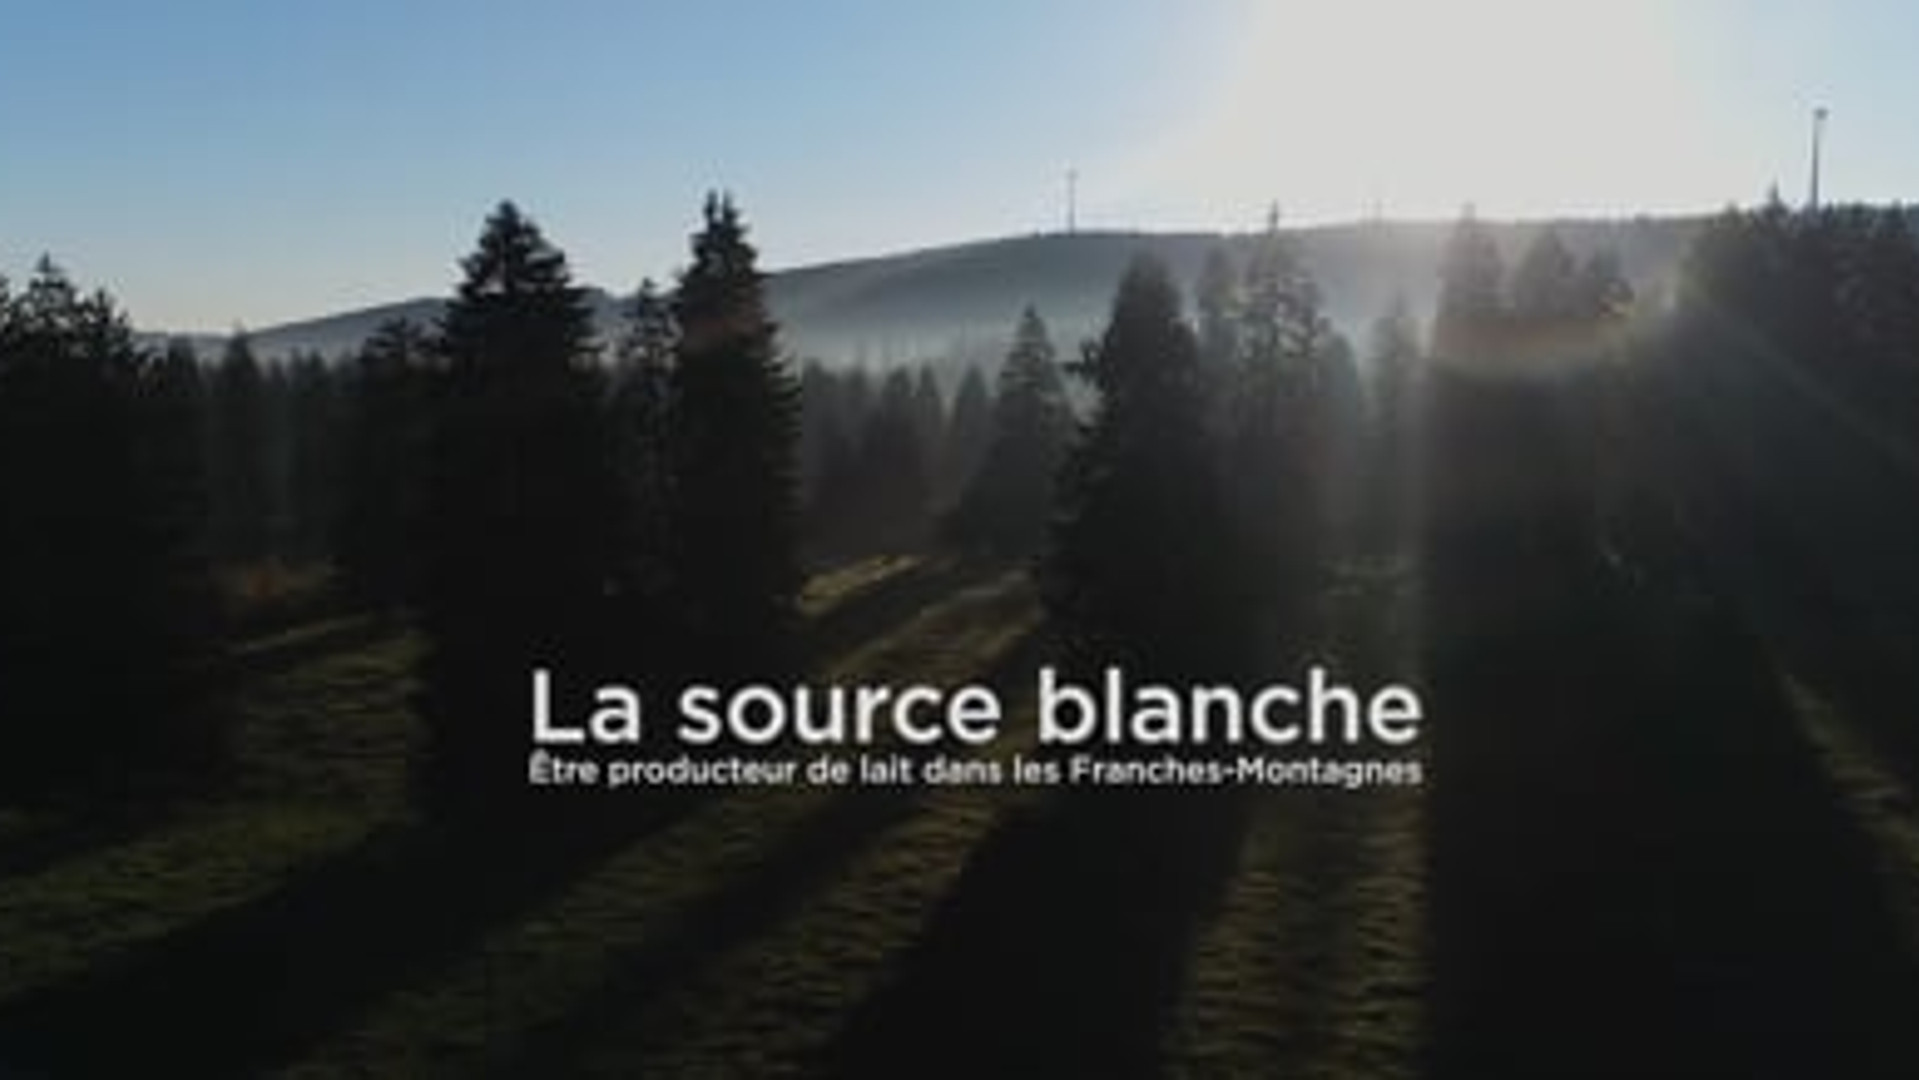 Fromagerie des Franches-Montagnes - Documentary